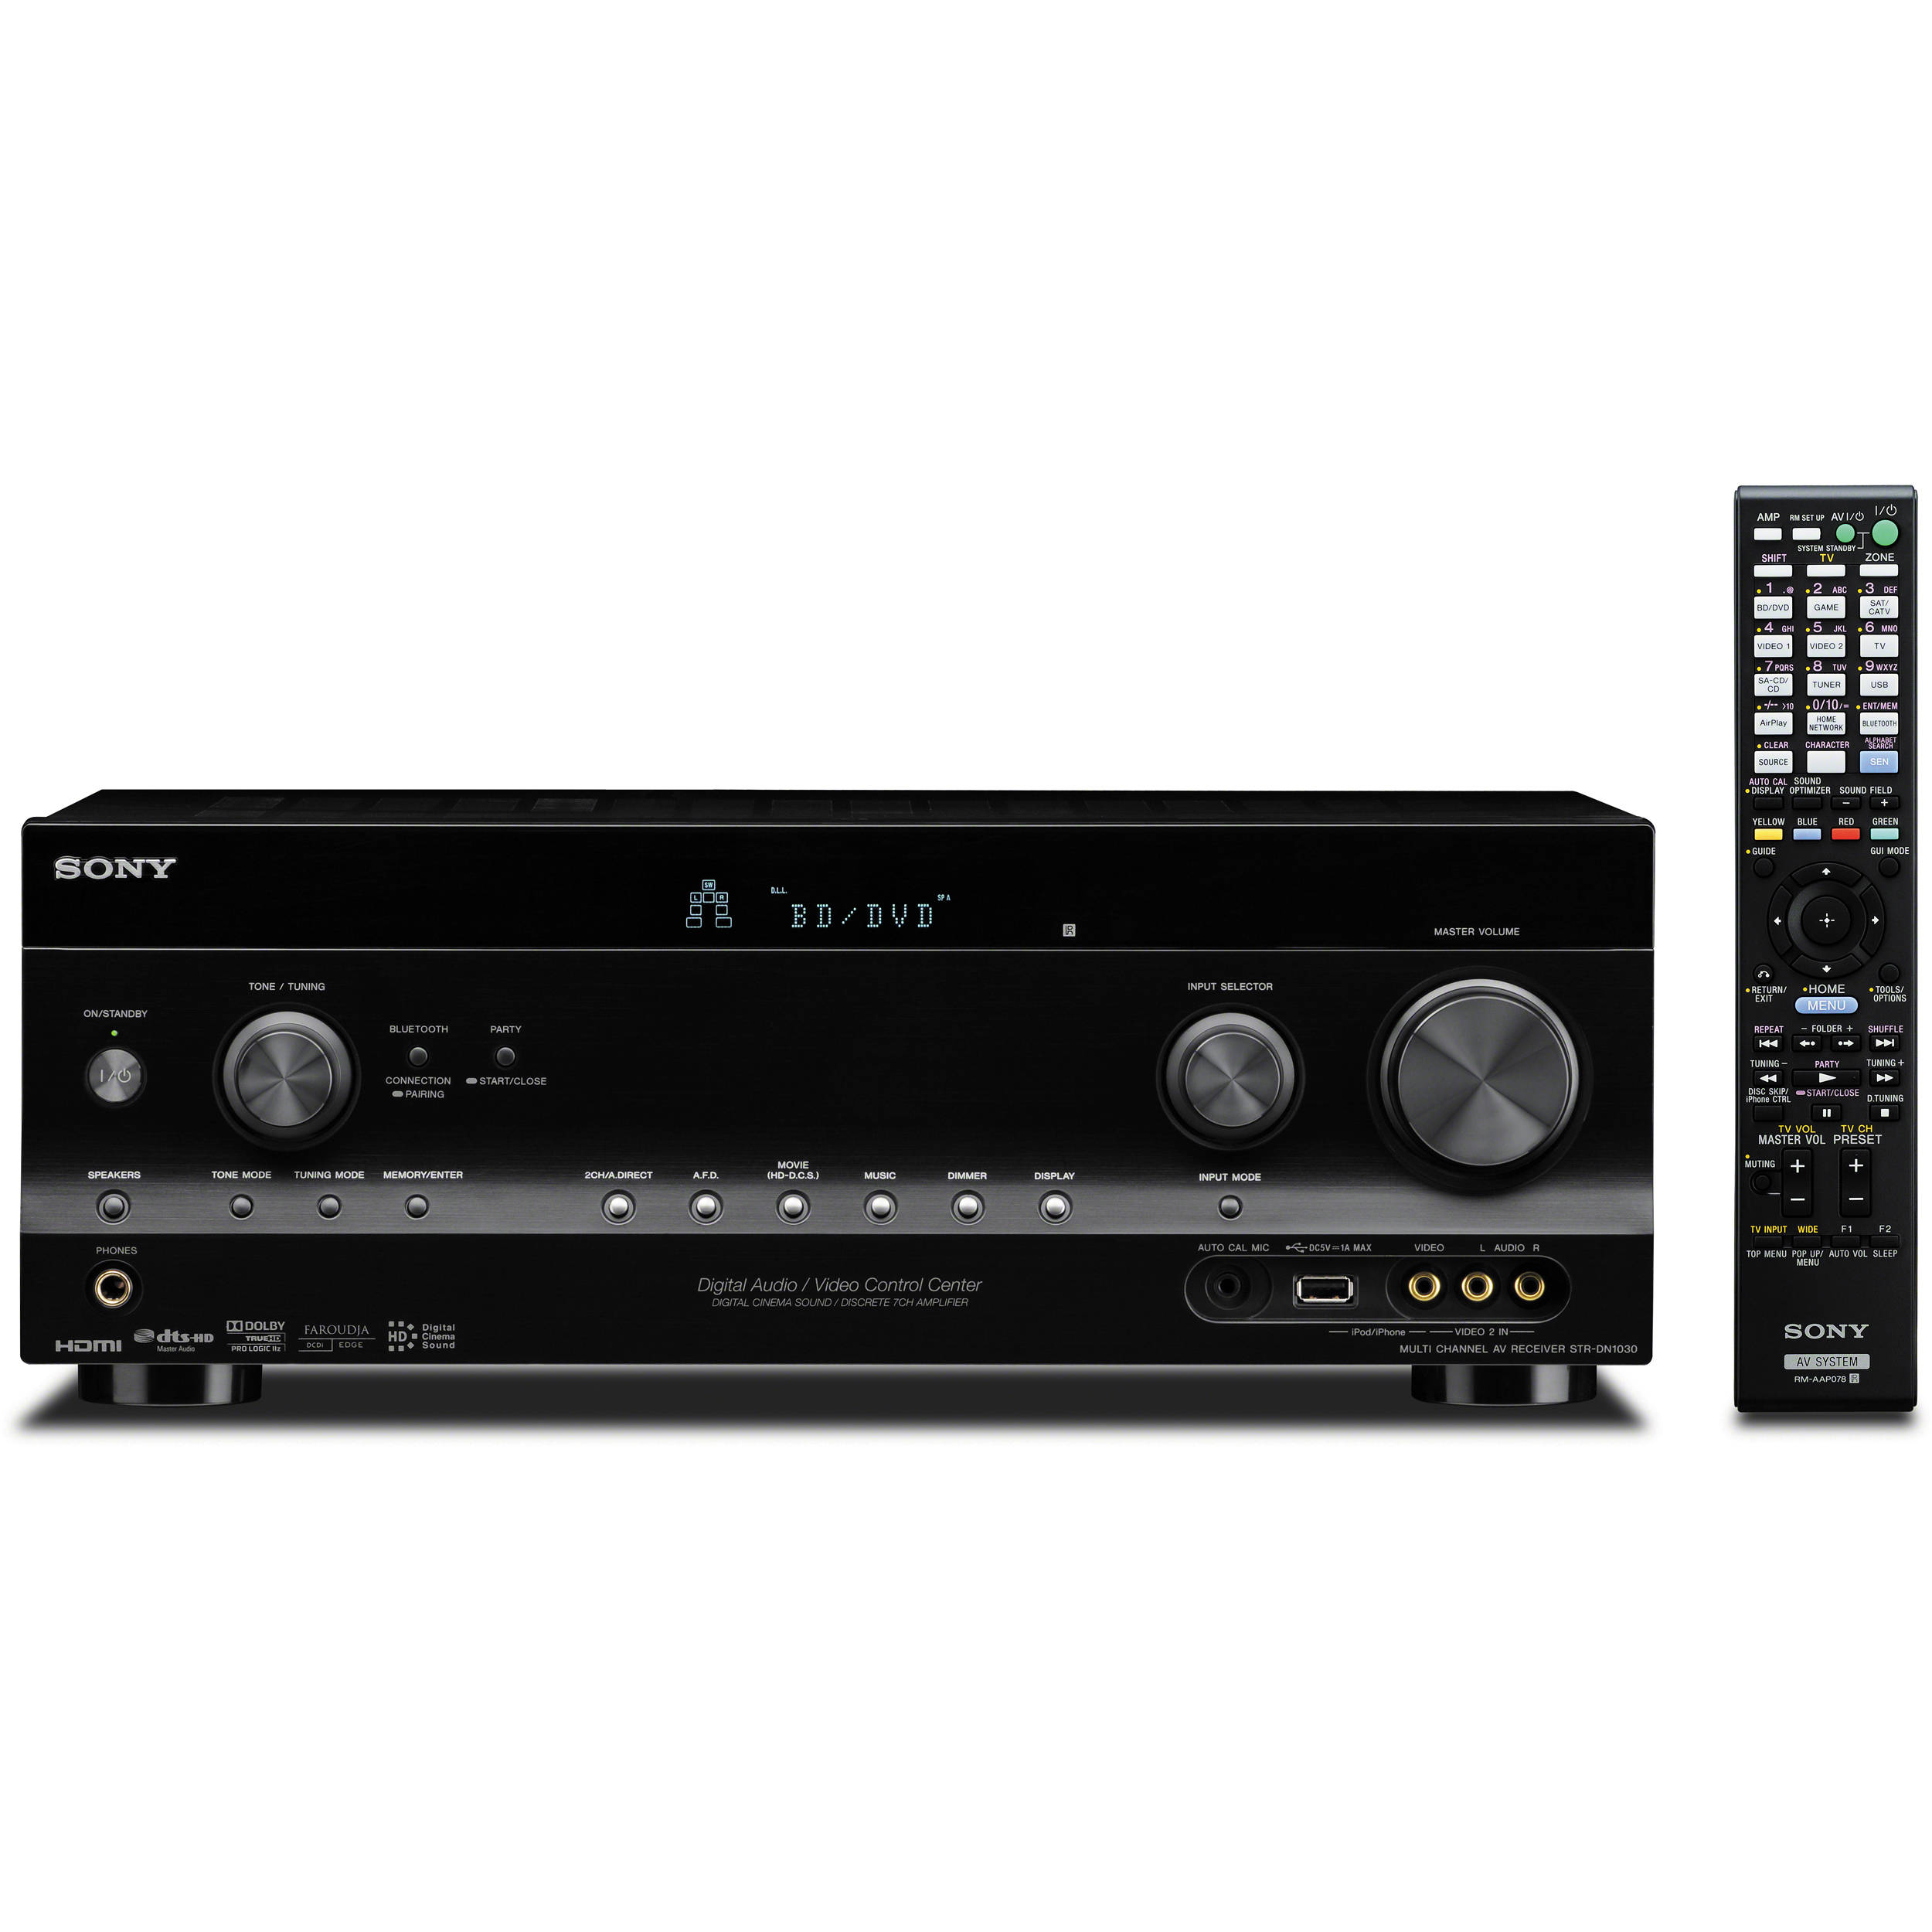 Sony Str Dn1030 72 Ch Wi Fi Network A V Receiver Strdn1030 Bh Audio Enhancement For Analog Amplifier